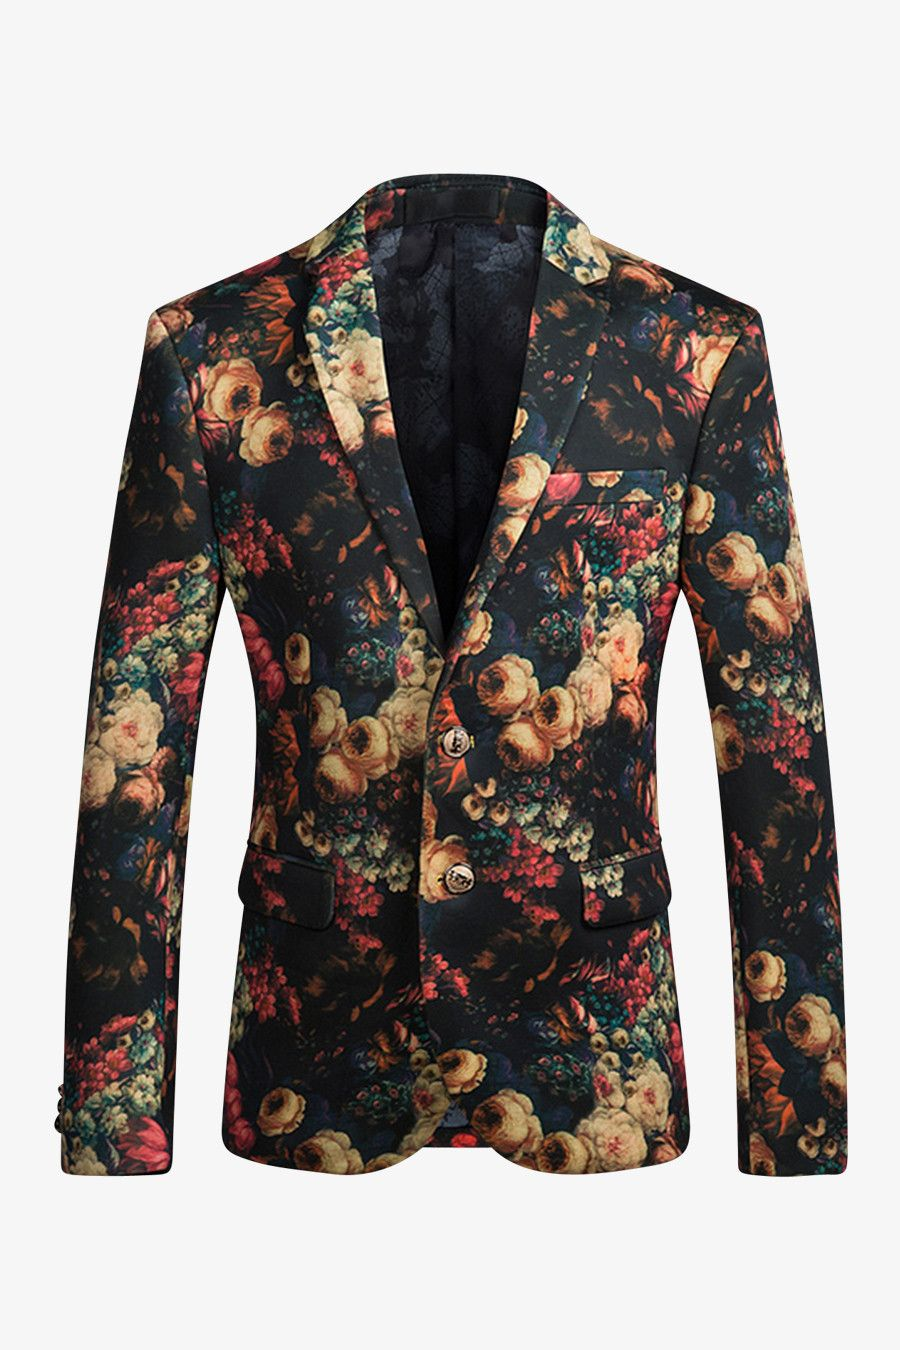 8ca702c0db4 Add an interesting element to your work wardrobe with this 2-button sport  coat. This suit jacket is overlaid with featuring a bold ...